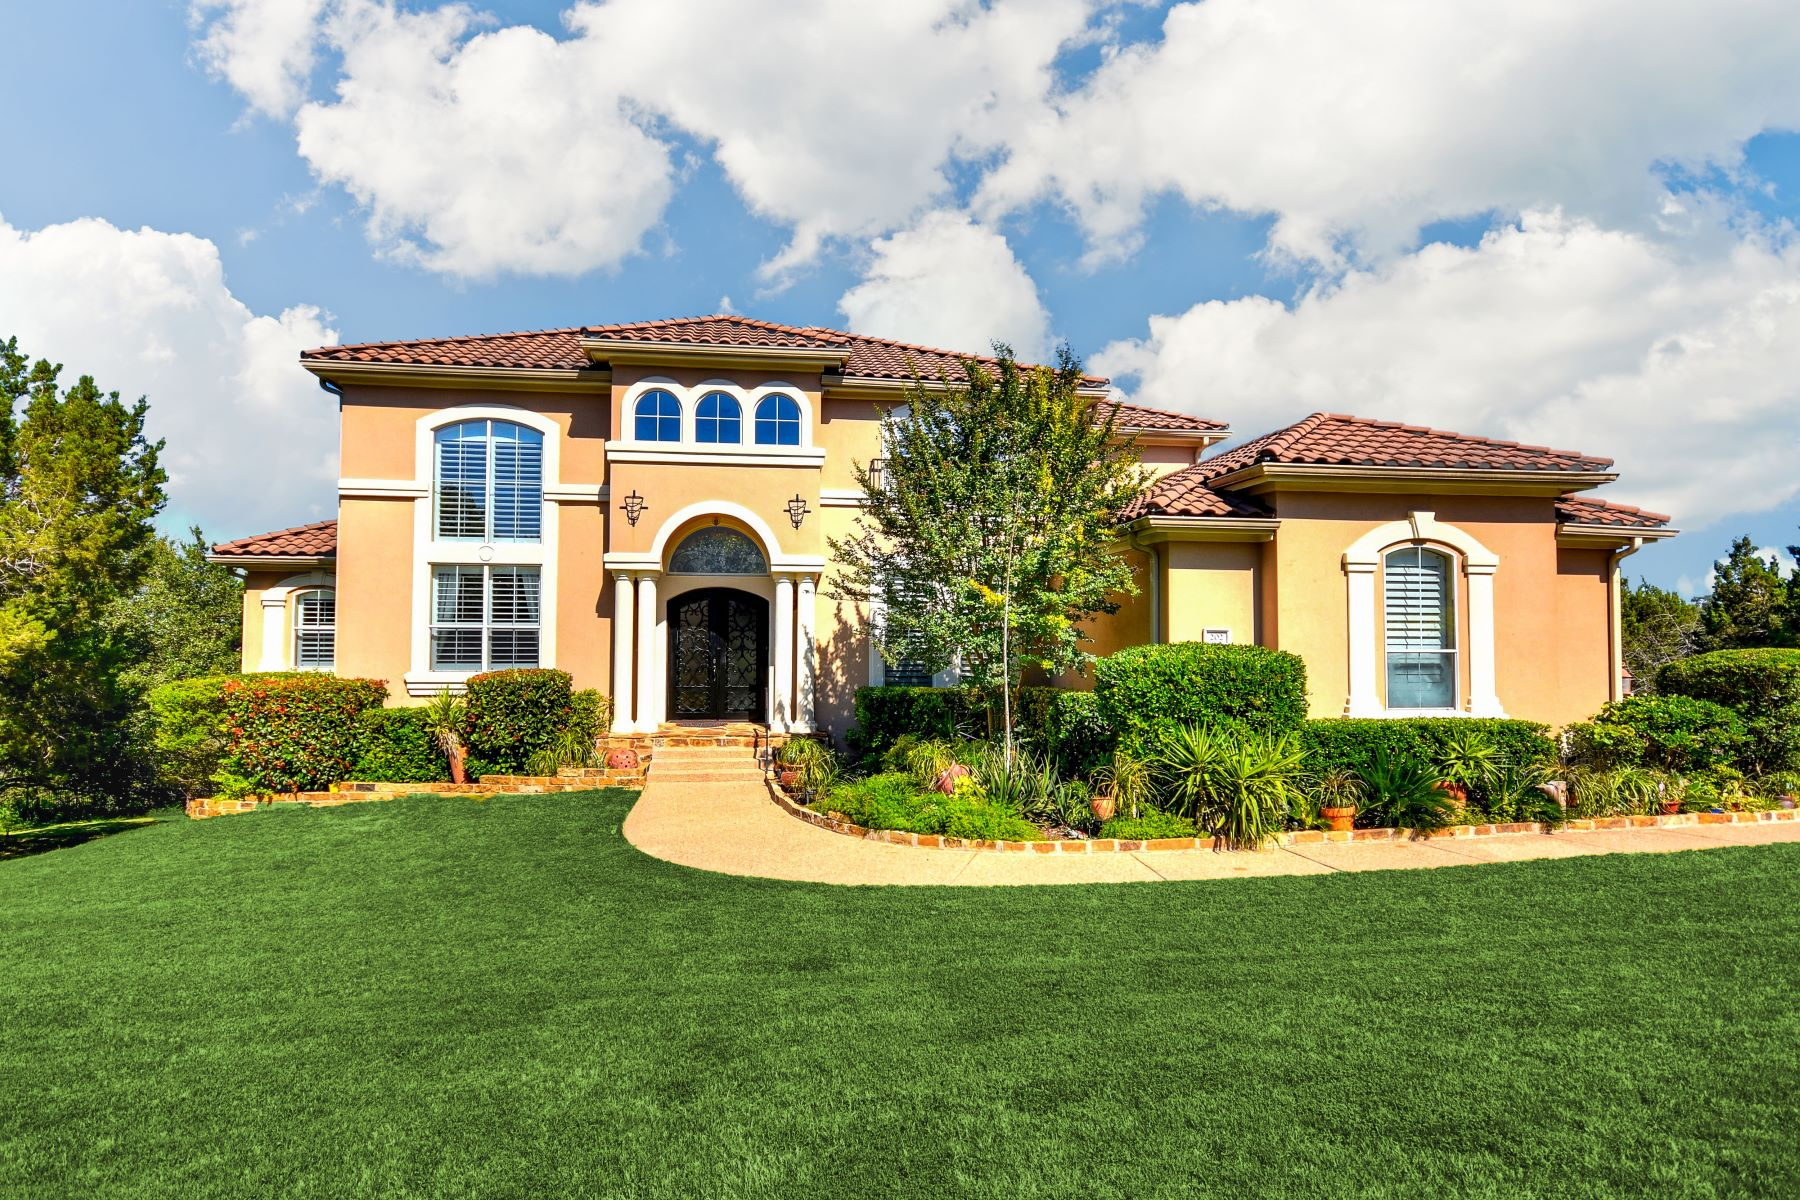 Casa Unifamiliar por un Venta en Absolutely Gorgeous Custom Home 202 Far Vela Lakeway, Texas 78734 Estados Unidos